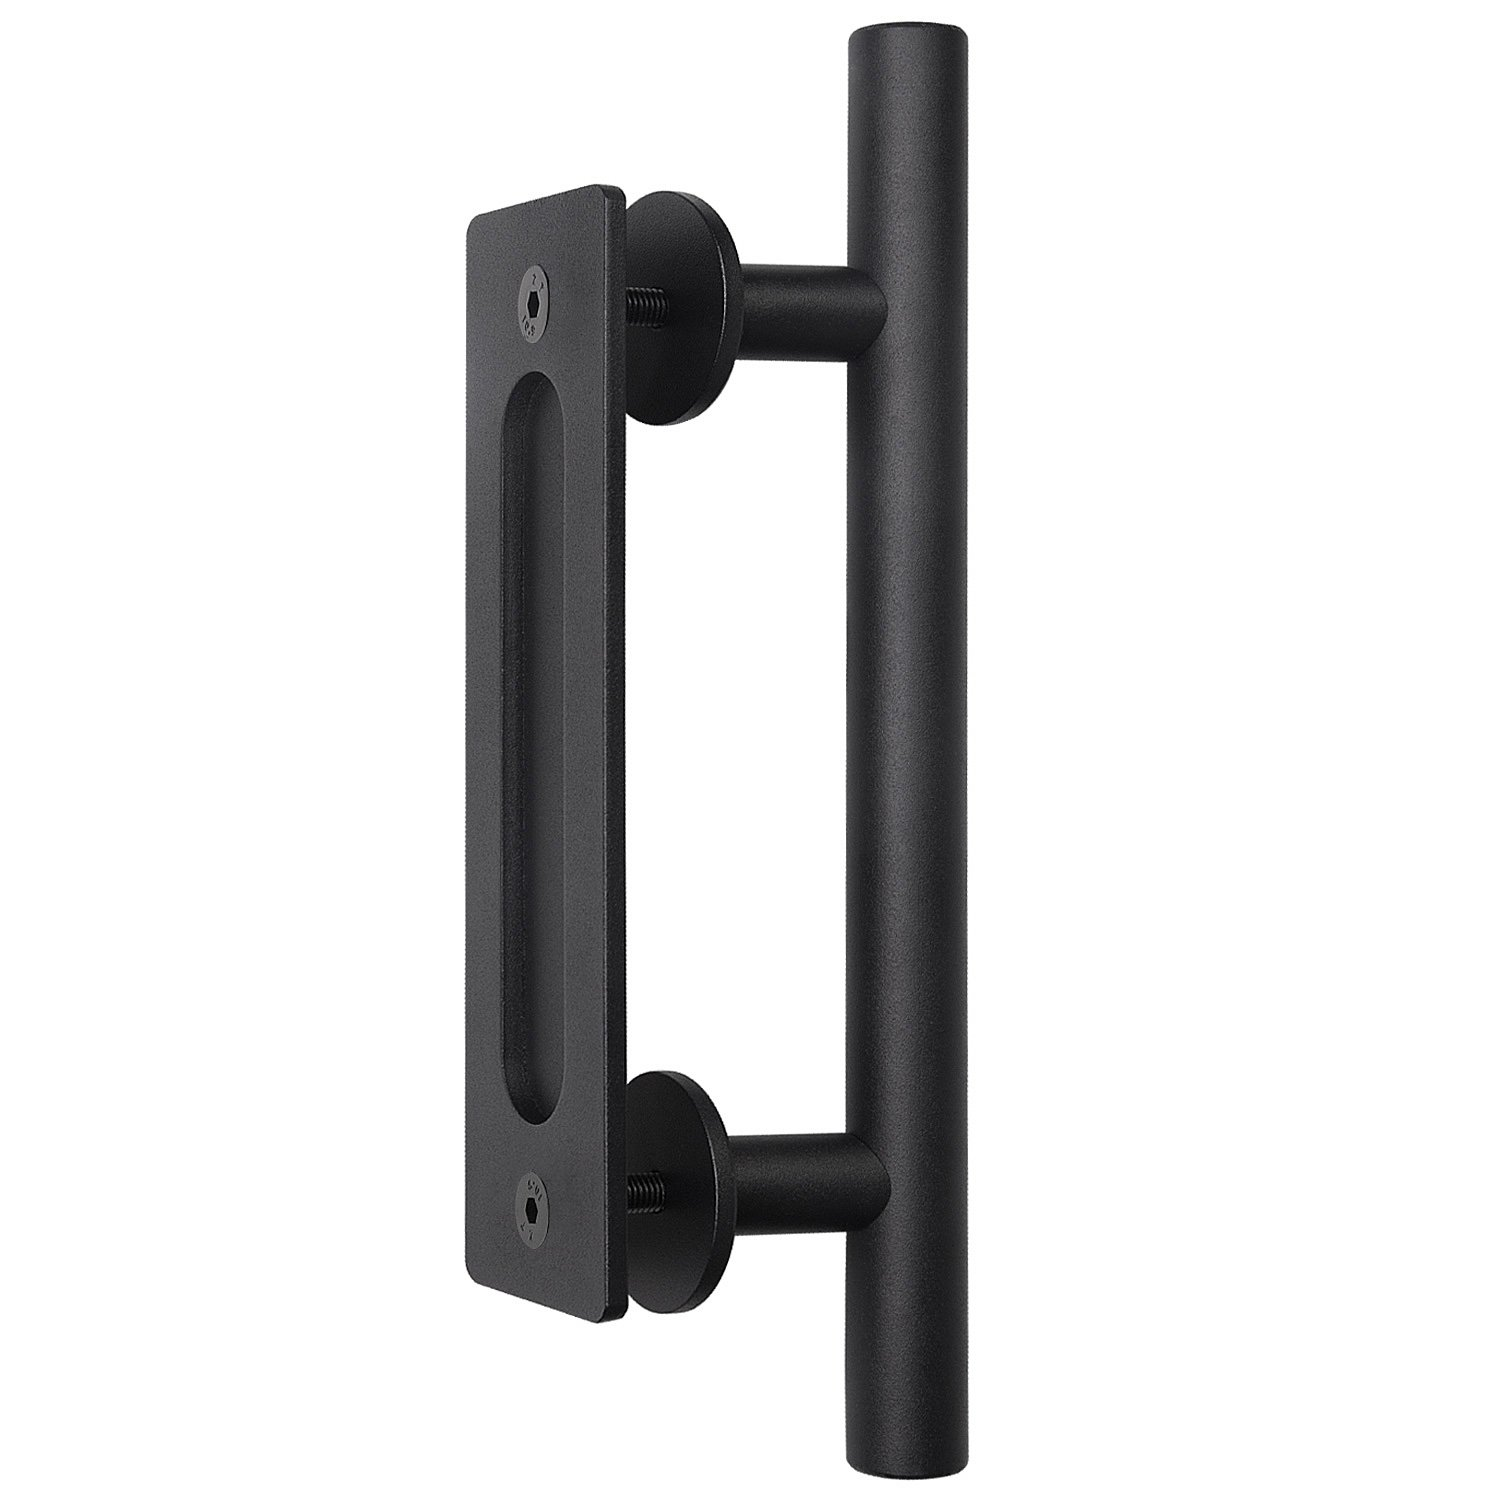 "Barn Door Handle Pull Flush Belegance Gate Handle Sliding Barn Door Handle Set Door Handle Barn Door Hardware Handle Black (12"") (Black)"